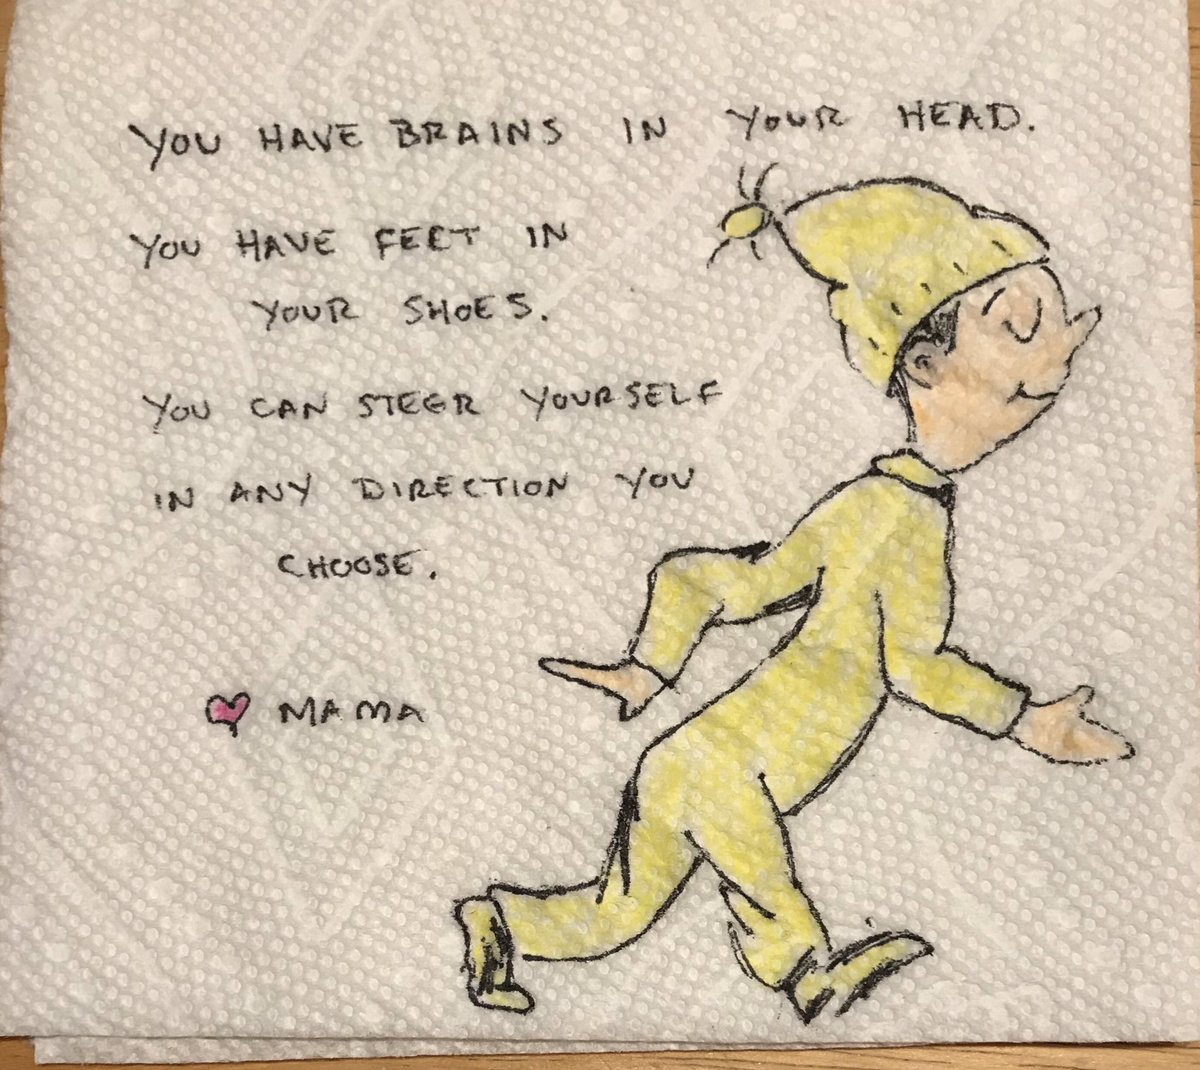 You have brains in your head. 🧠  You have feet in your shoes. 🦶  You can steer yourself in any direction you choose. 🔀 - Dr. Seuss  #drseuss #firstdayofschool #drseussquotes https://t.co/CC90n9hoQj